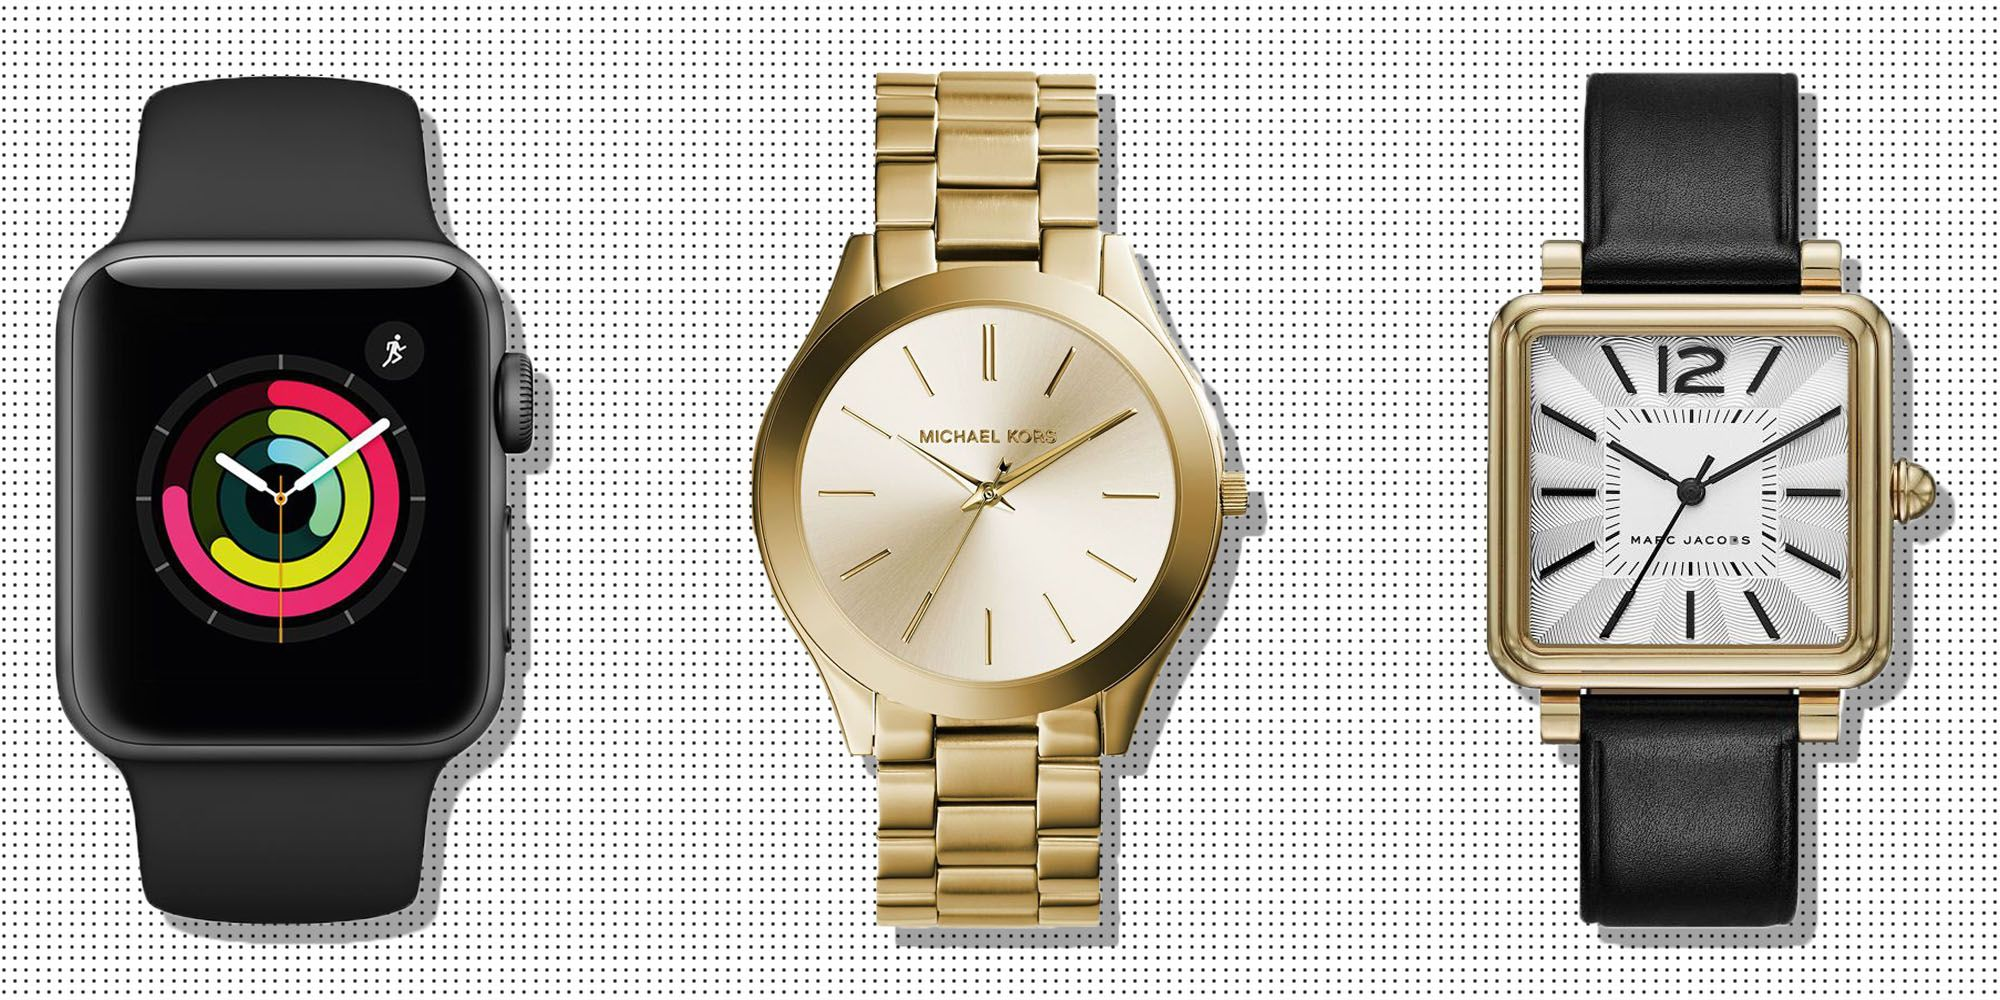 23 Best Women's Watches 2019 Top Fashion Watches For Women